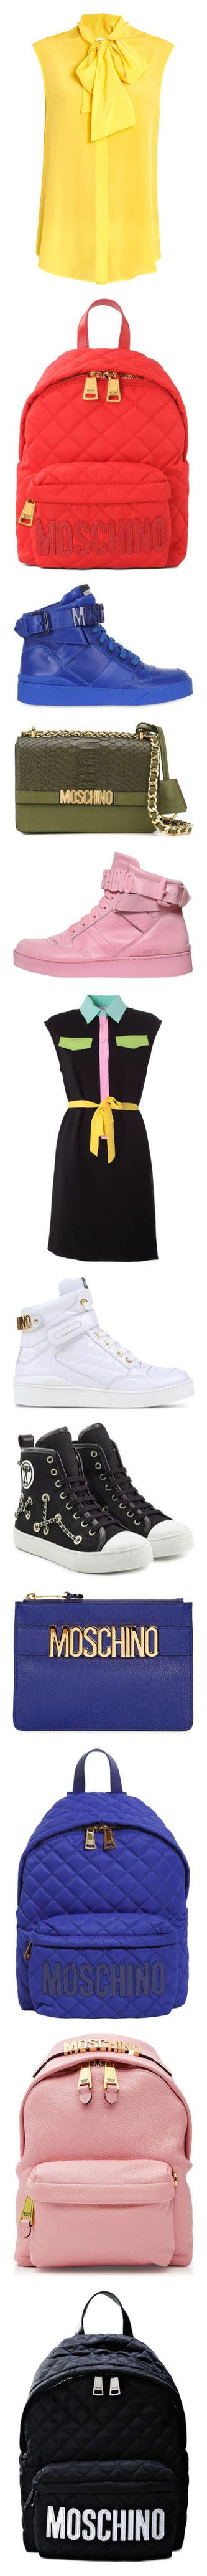 """moschino"" by ashleyluna277 ❤ liked on Polyvore featuring tops, blouses, shirts, moschino, sleeveless top, moschino shirt, yellow top, shirt tops, sleeveless blouse and shirt blouse"